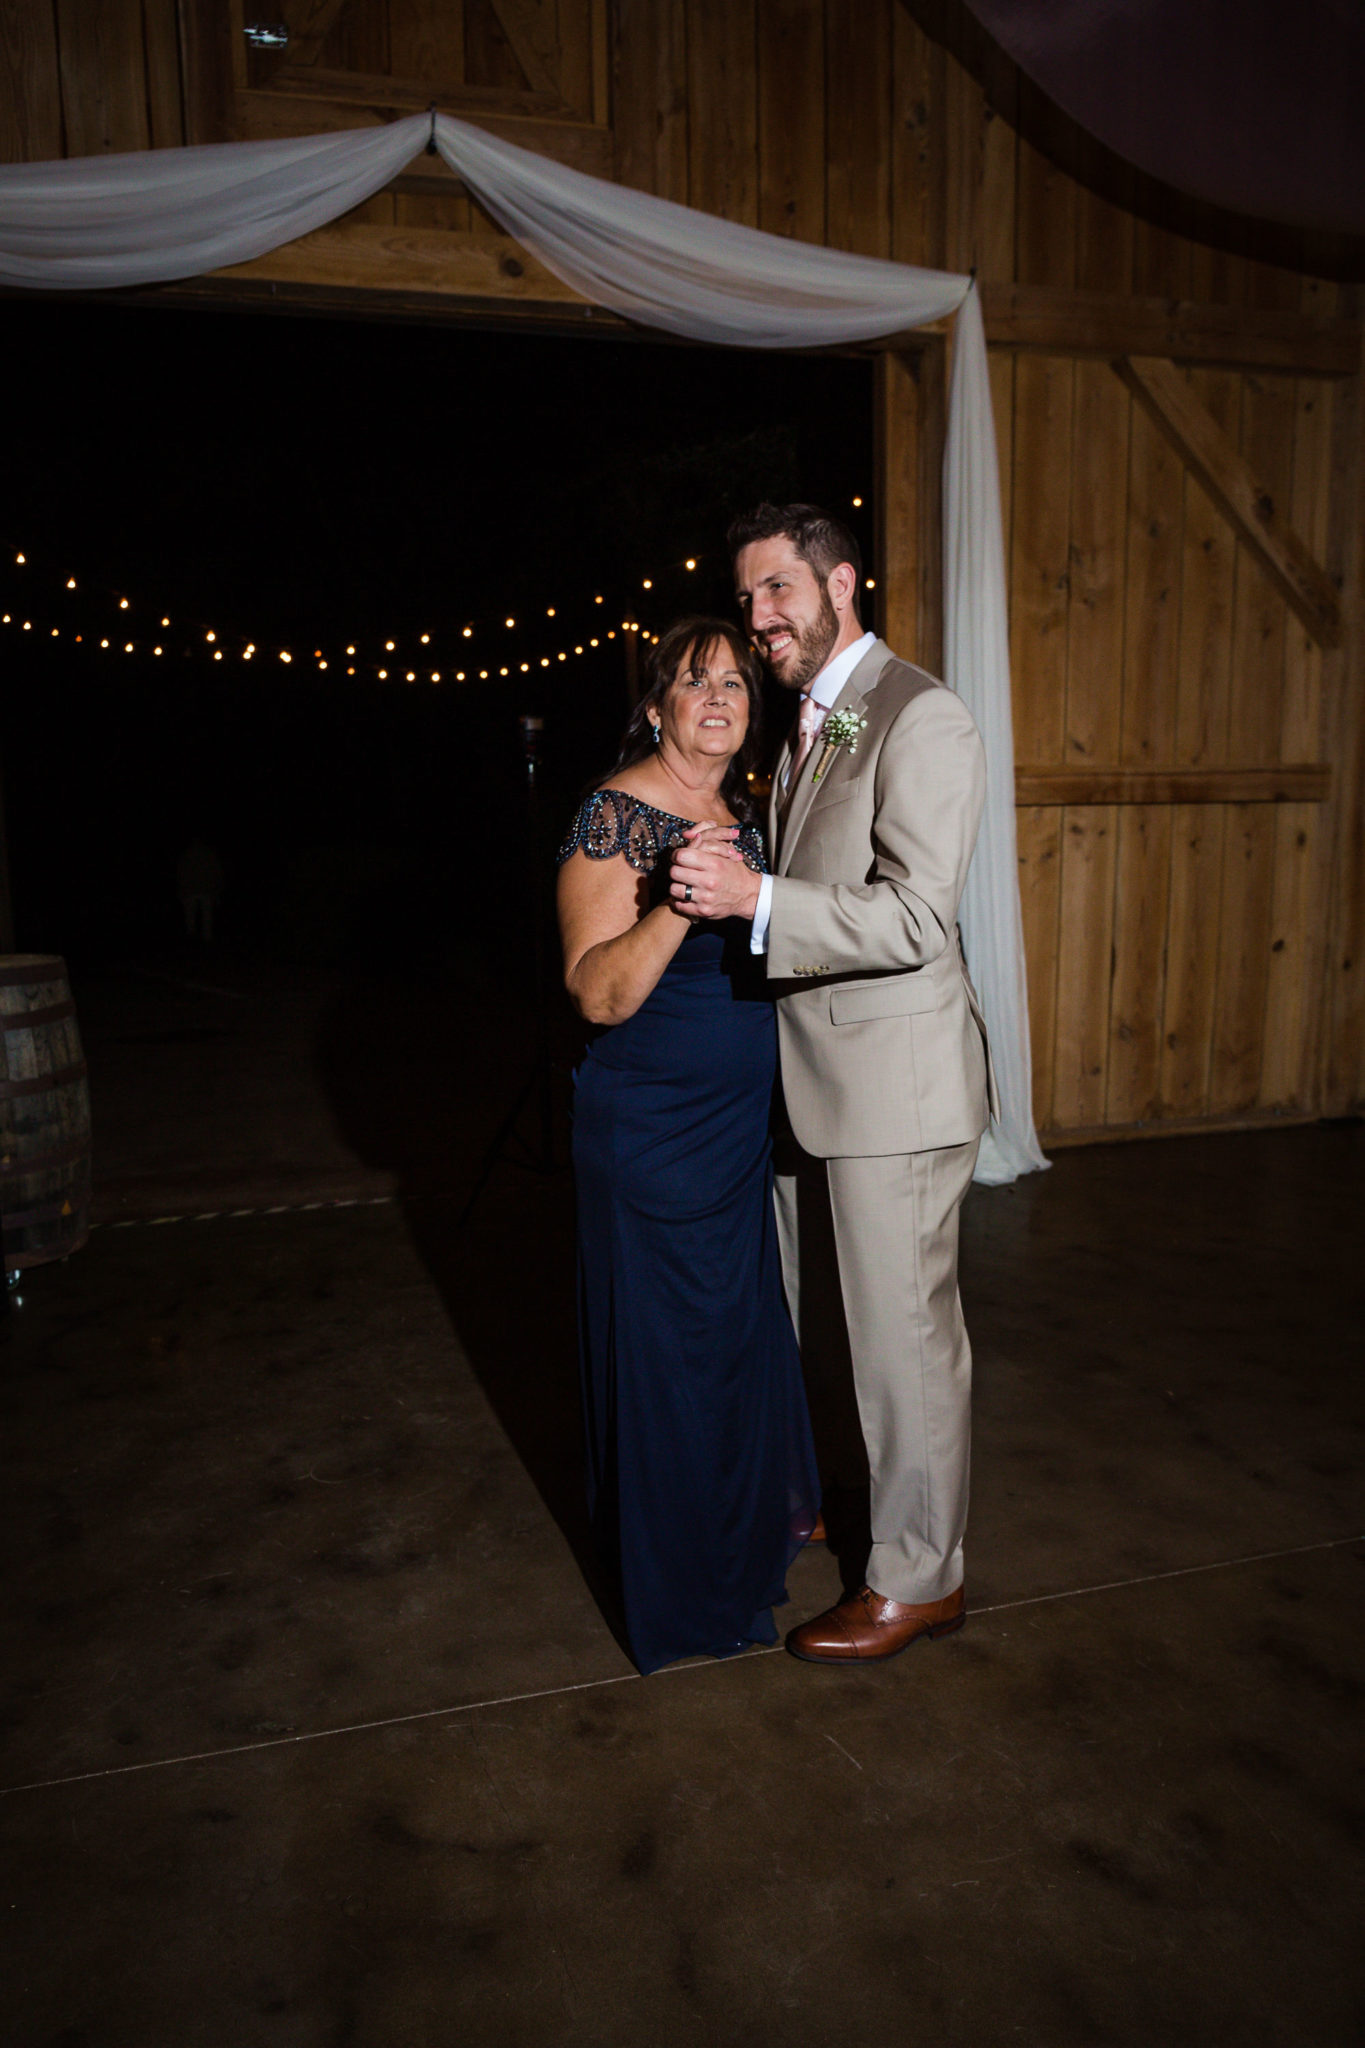 The mother-son dance.